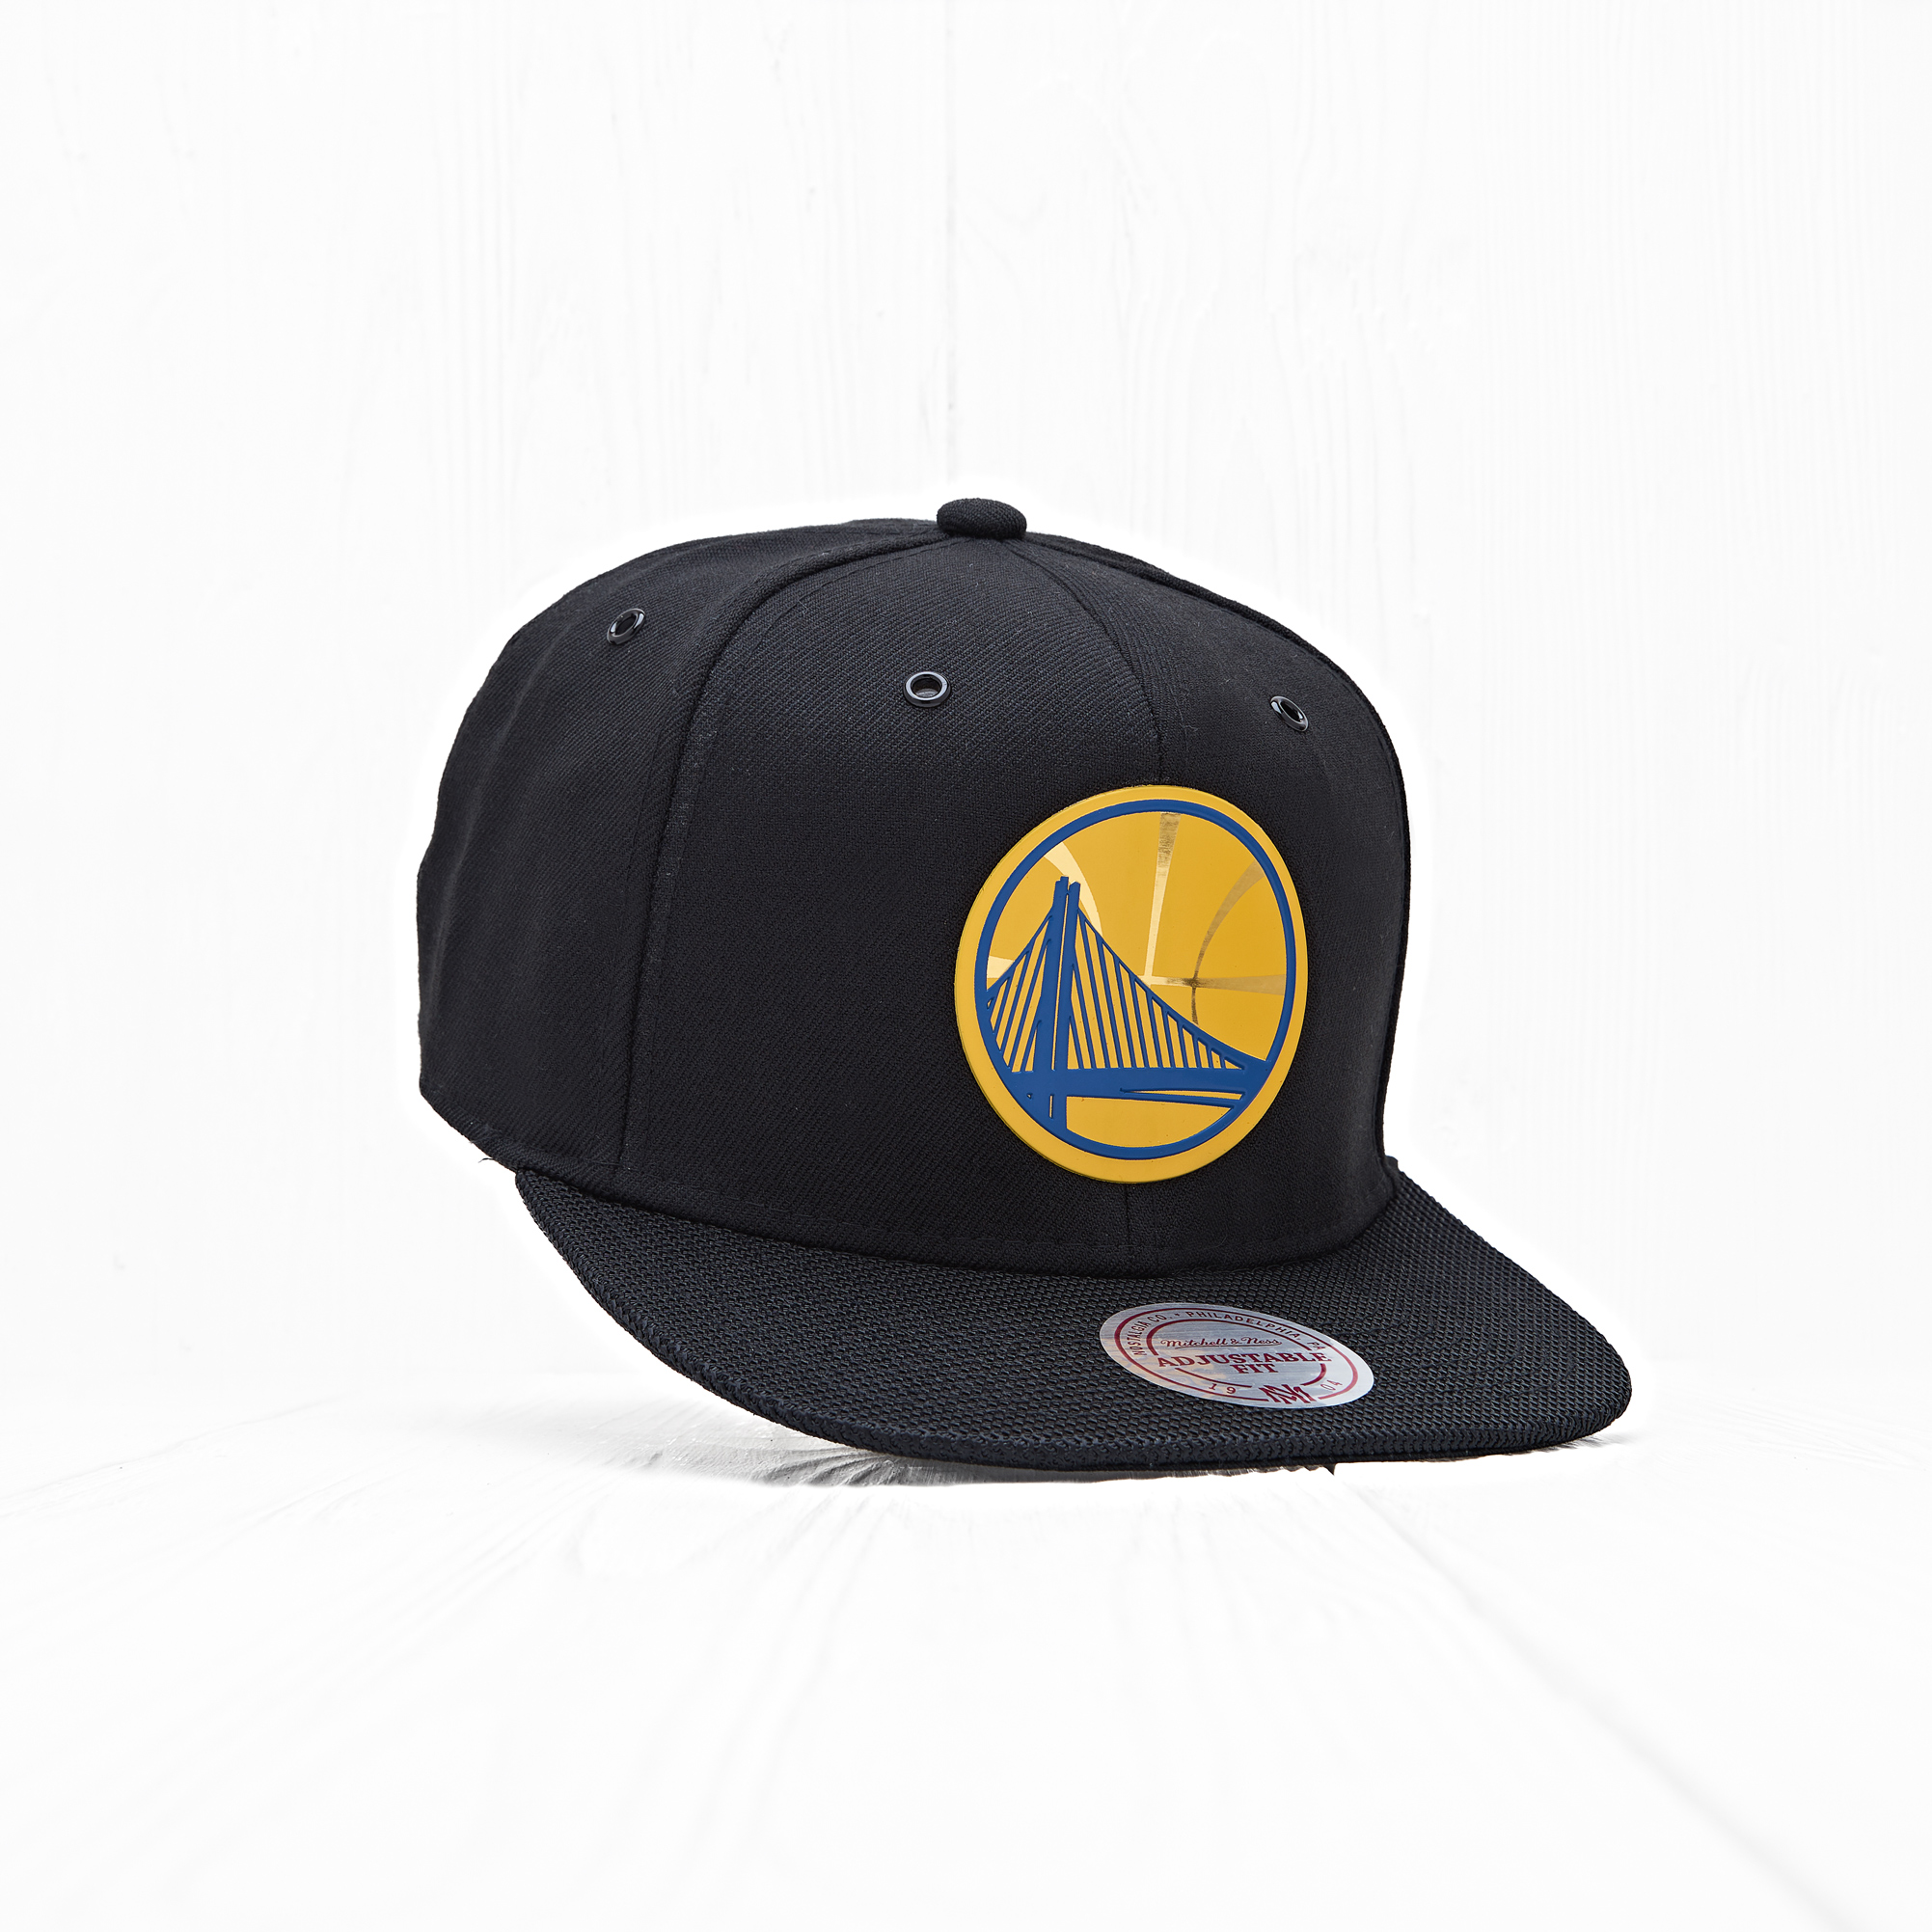 Снепбек Mitchell & Ness NBA GS WARRIORS Carat Black